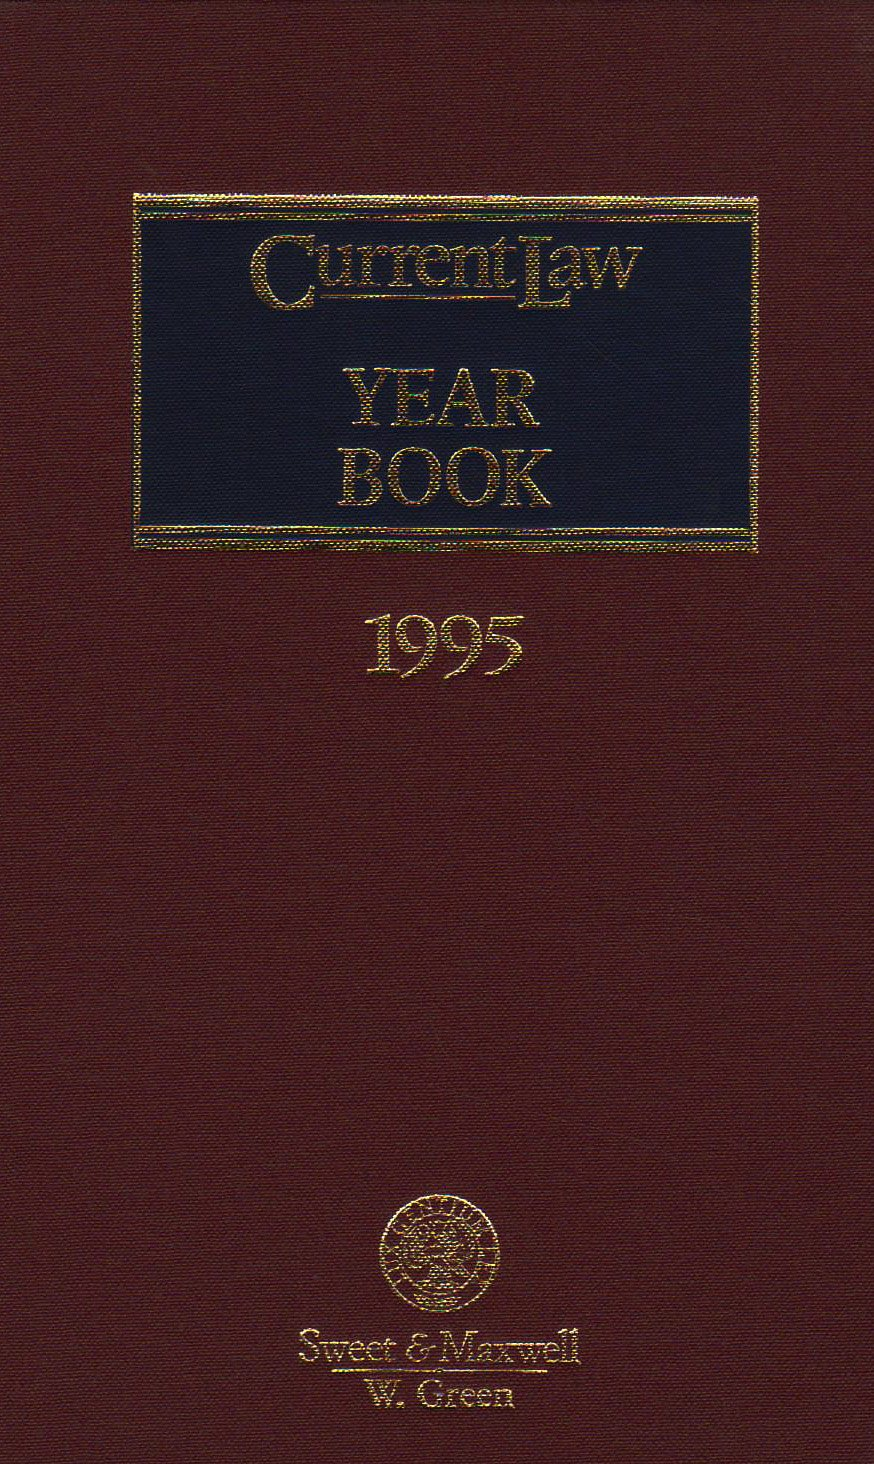 Current Law Year Book 1995